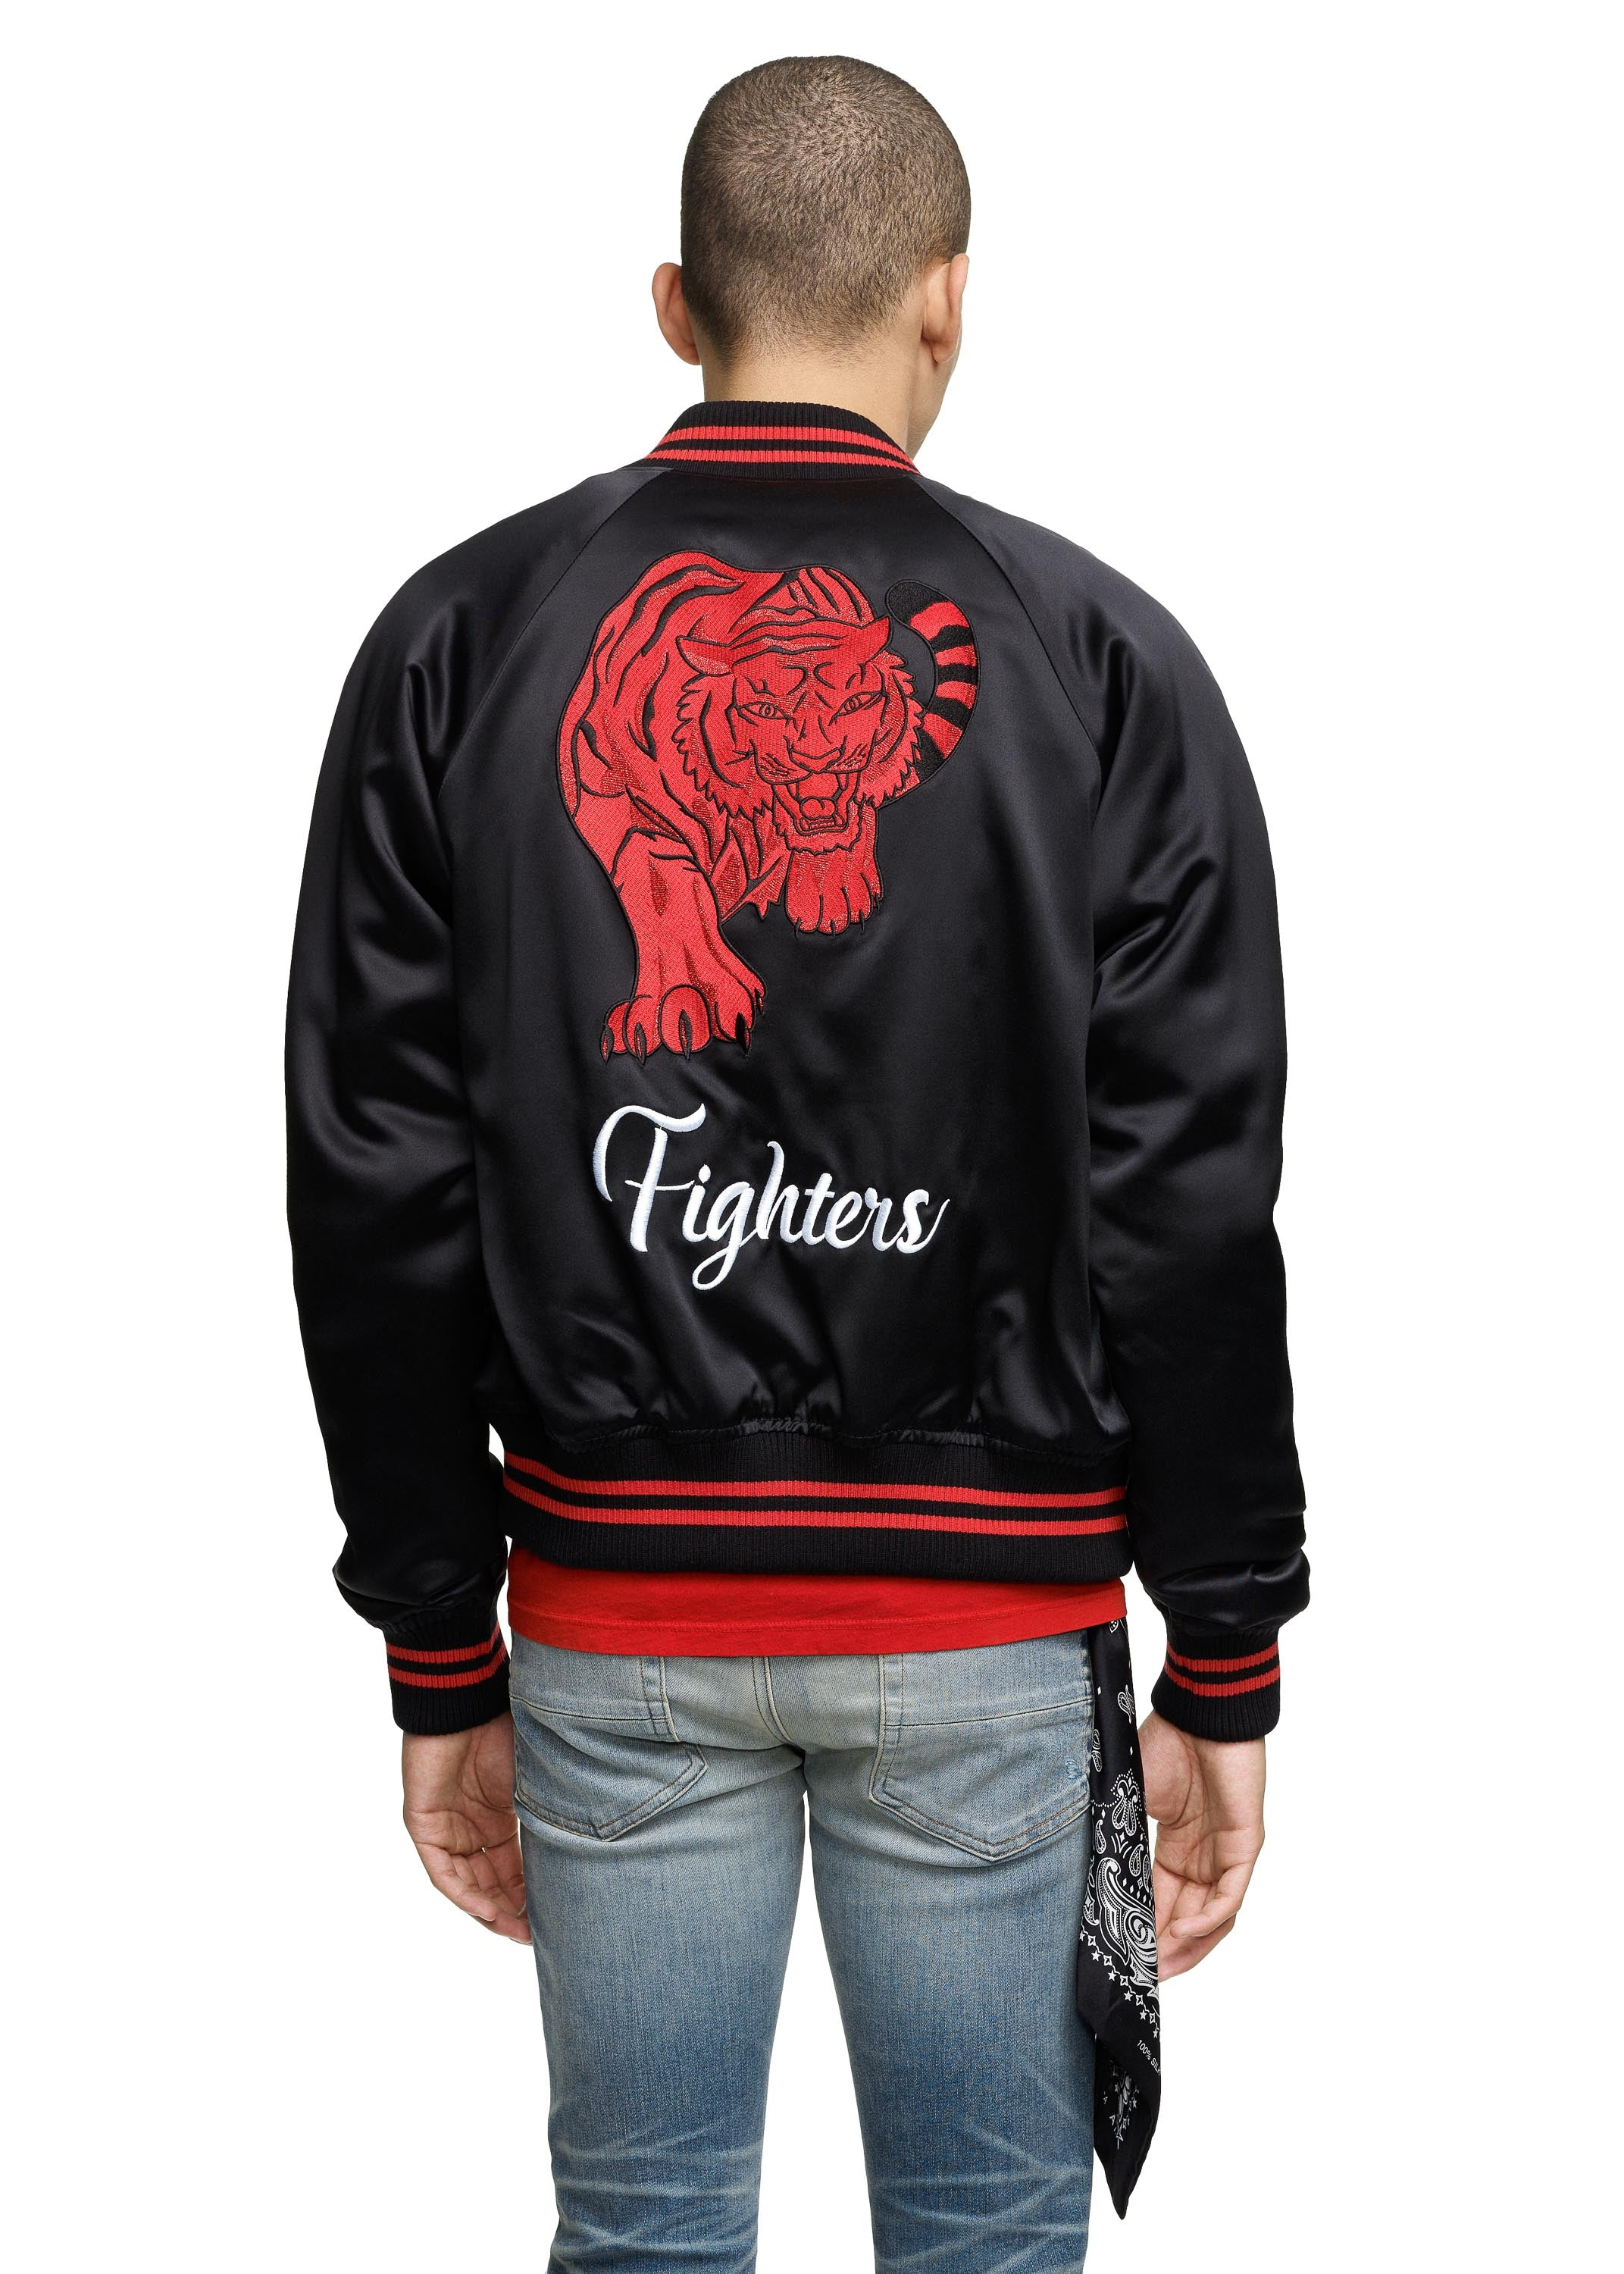 fighters-embroidered-baseball-jacket-black-red-image-3